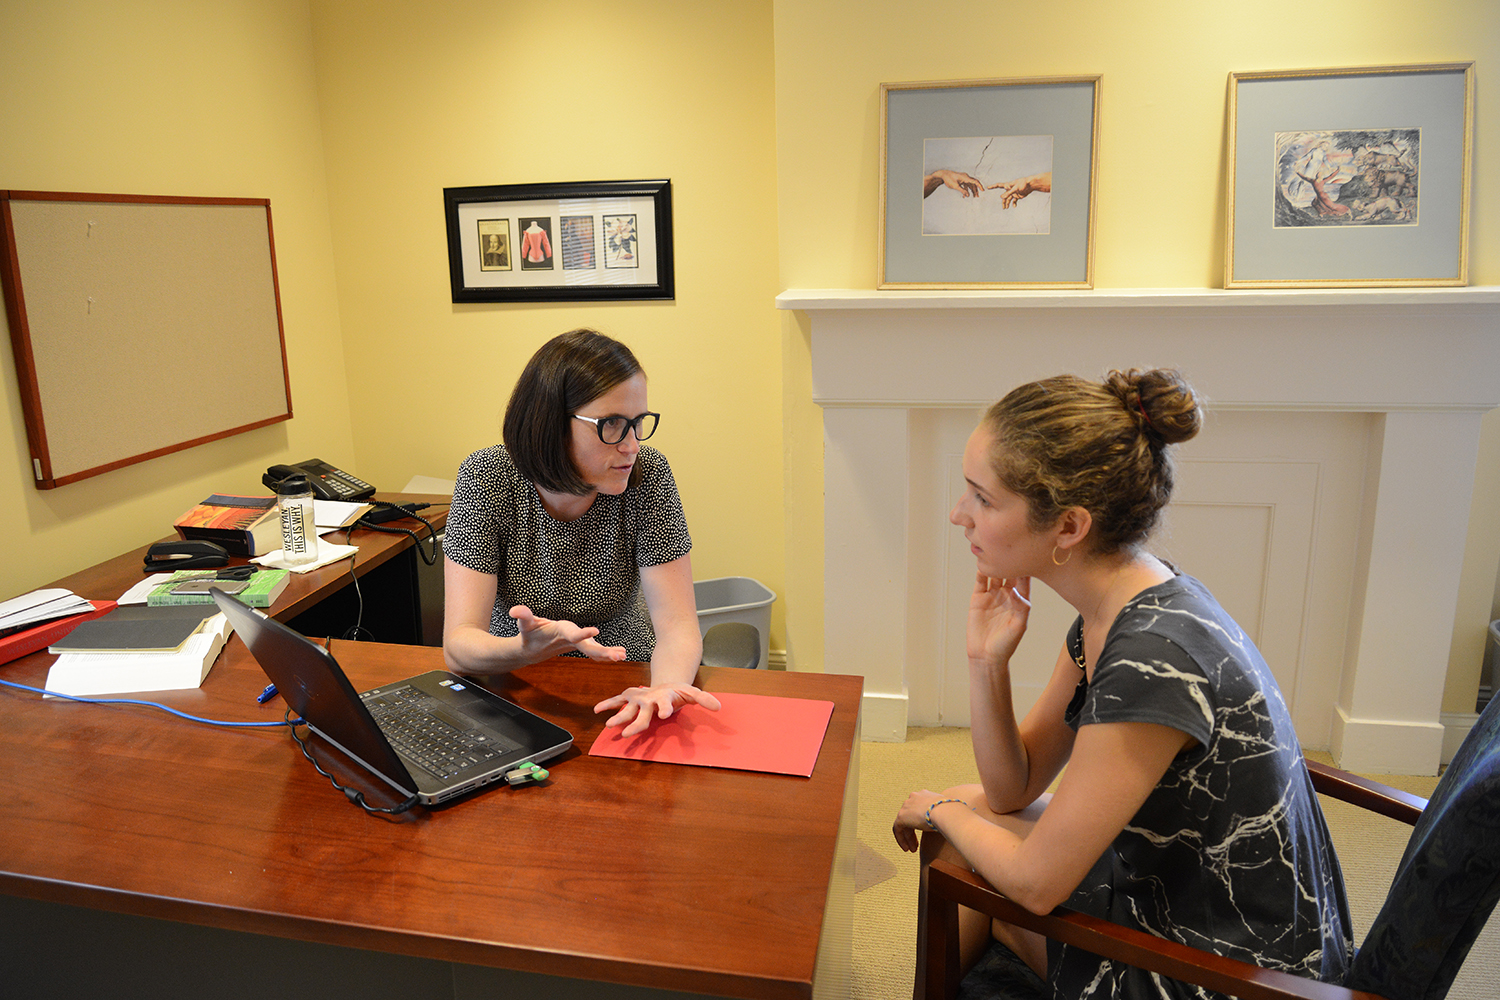 Courtney Weiss Smith, assistant professor of English, met with Catherine Albert '19.